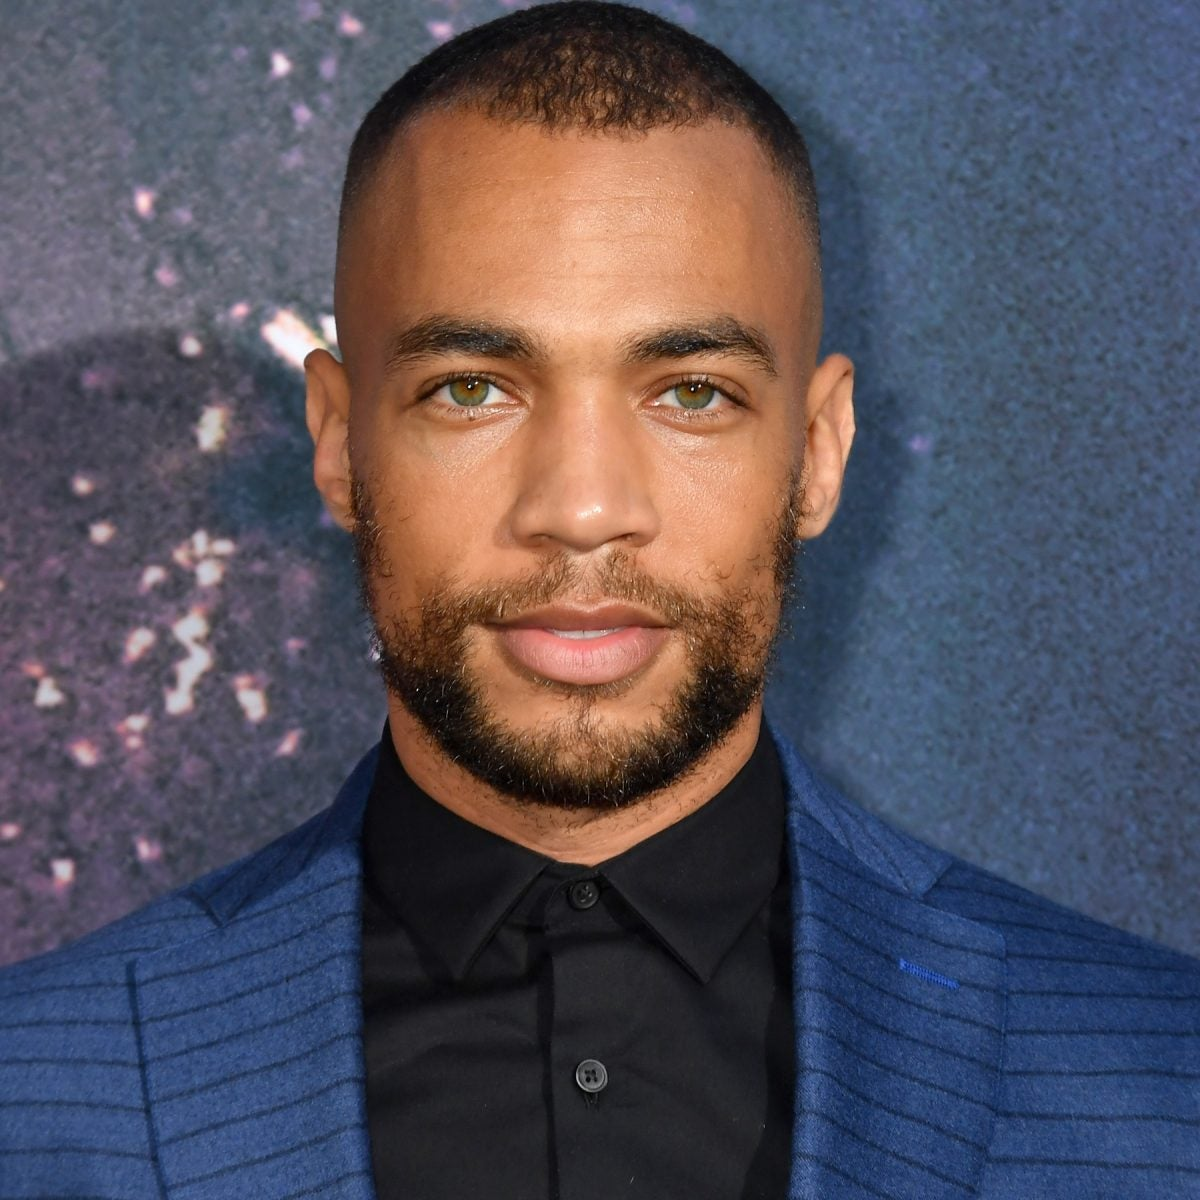 Insecure's Kendrick Sampson on Black Mental Health & Reimagining Justice